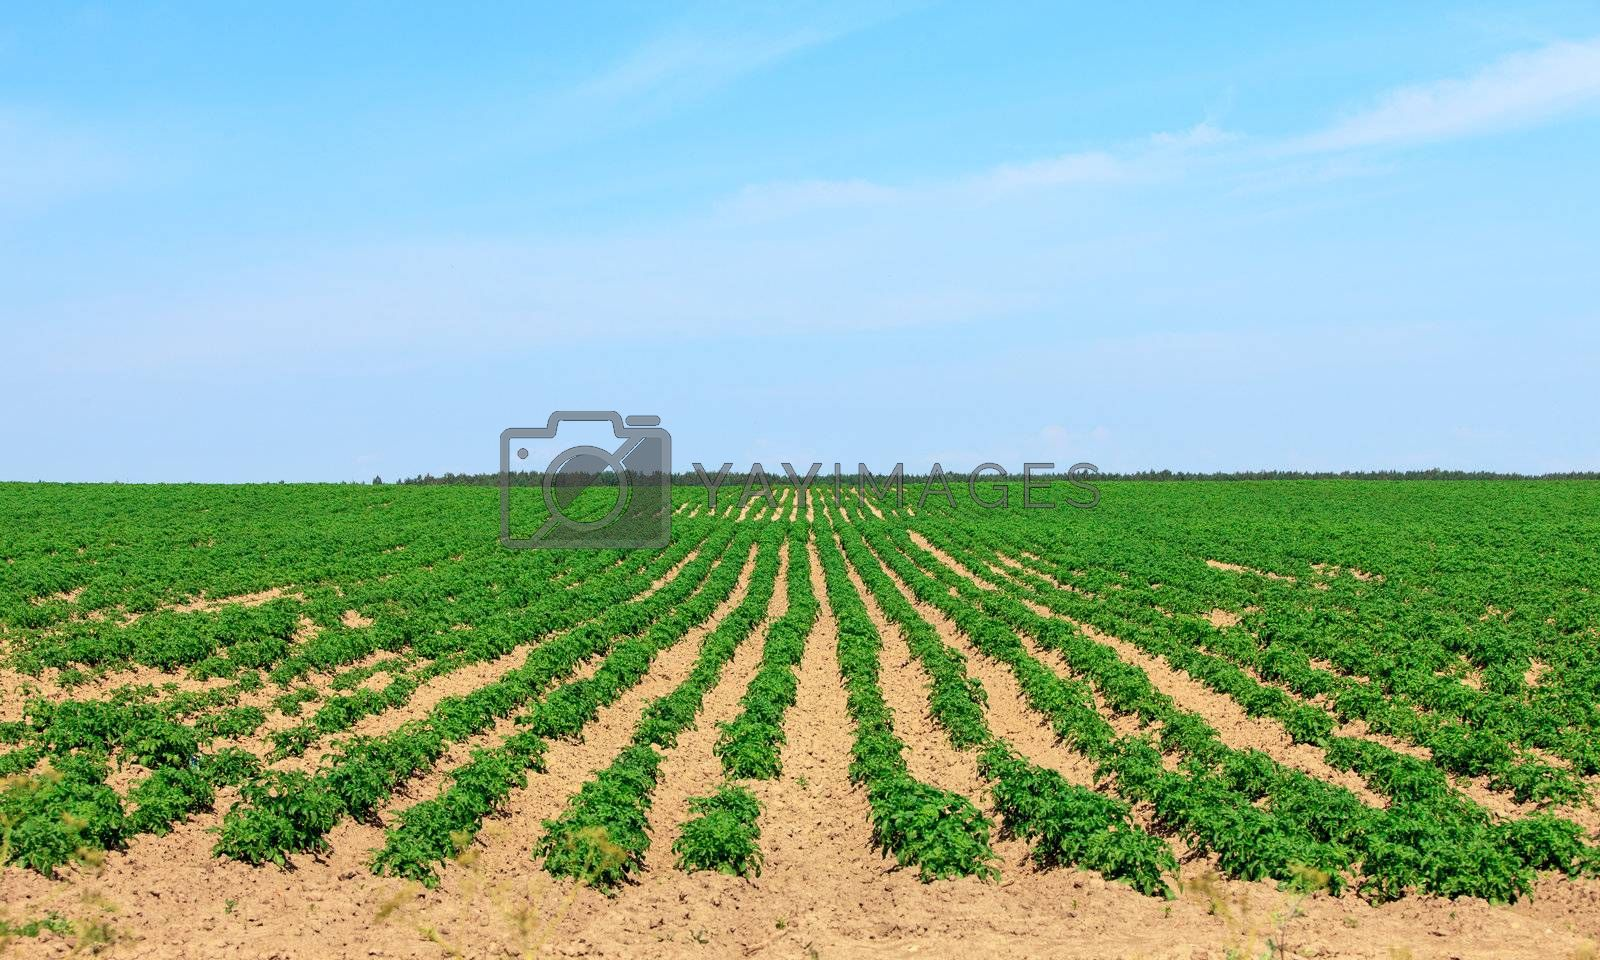 Potato Fields in the Countryside, on sky background